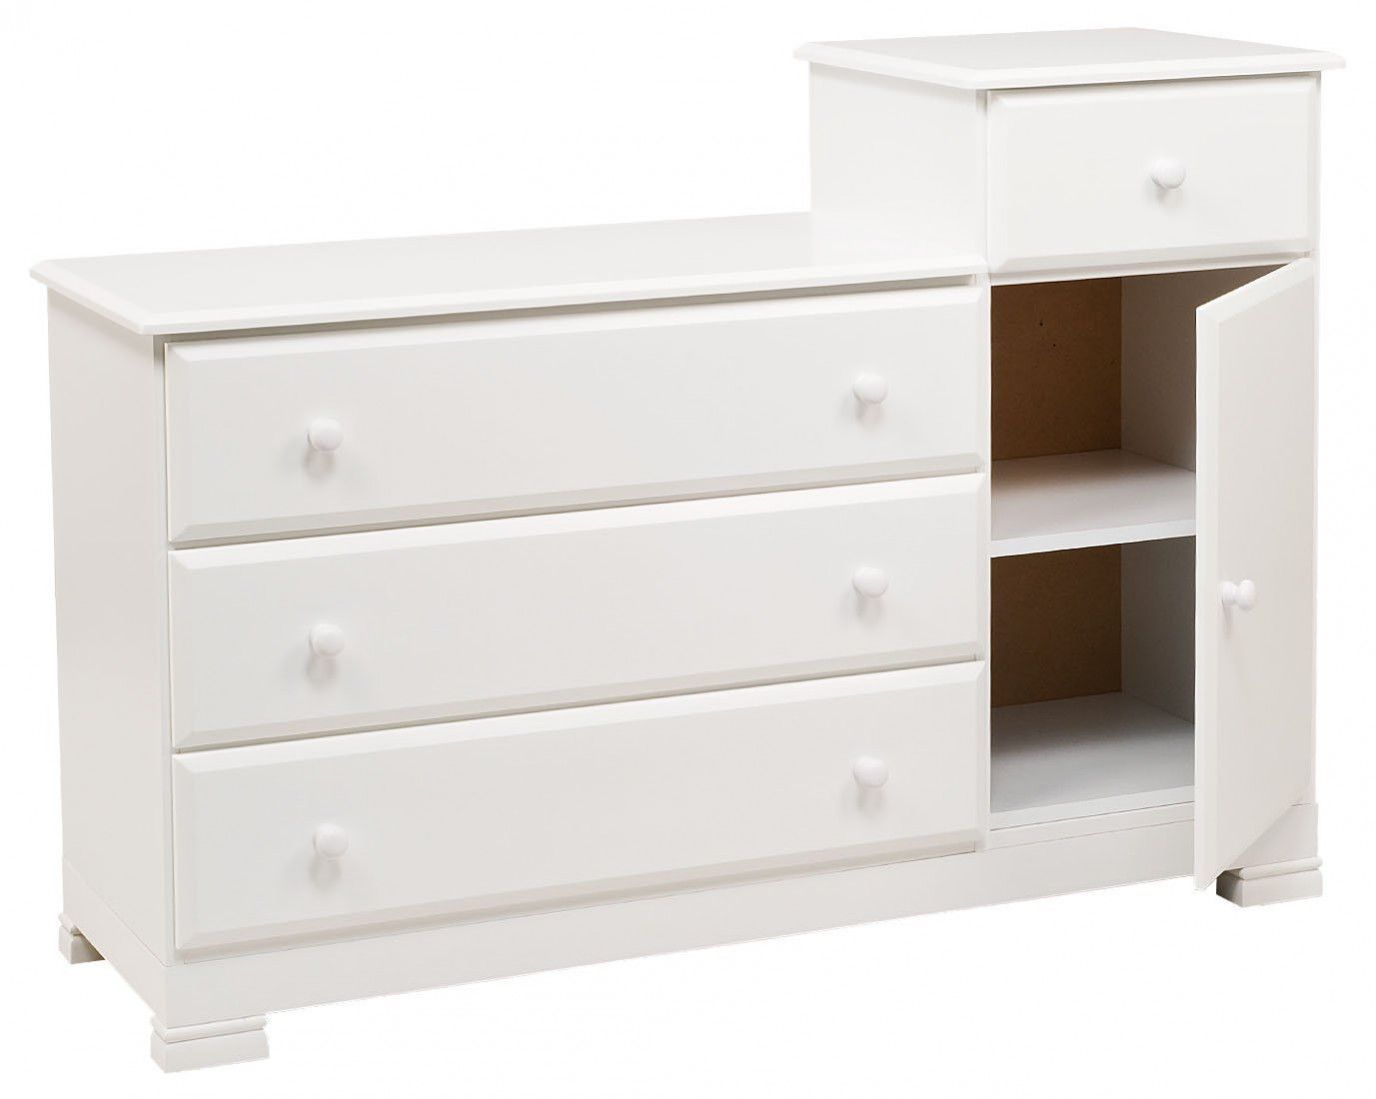 78 White Changing Table Dresser Combo Photos Of Bedrooms Interior Design Check More At